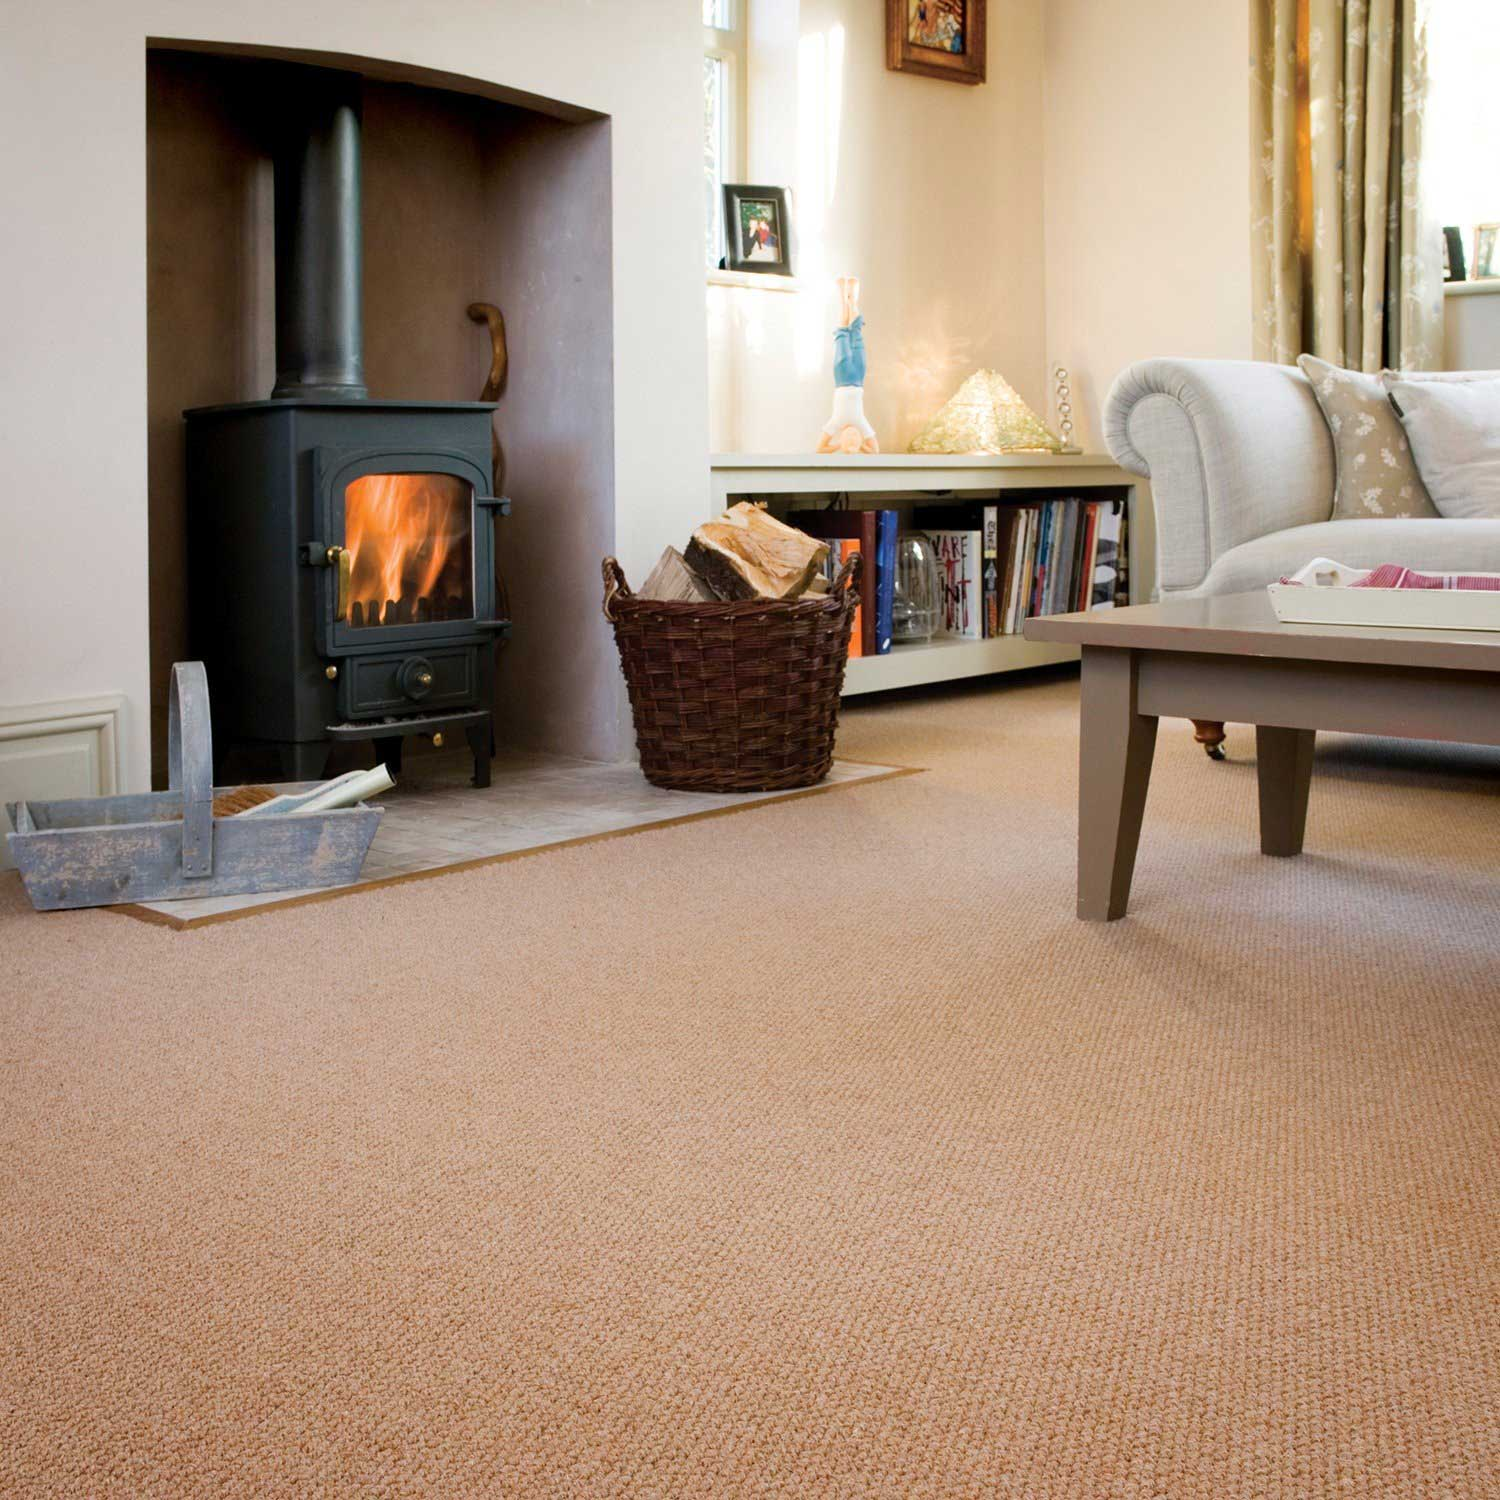 carpets-in-home